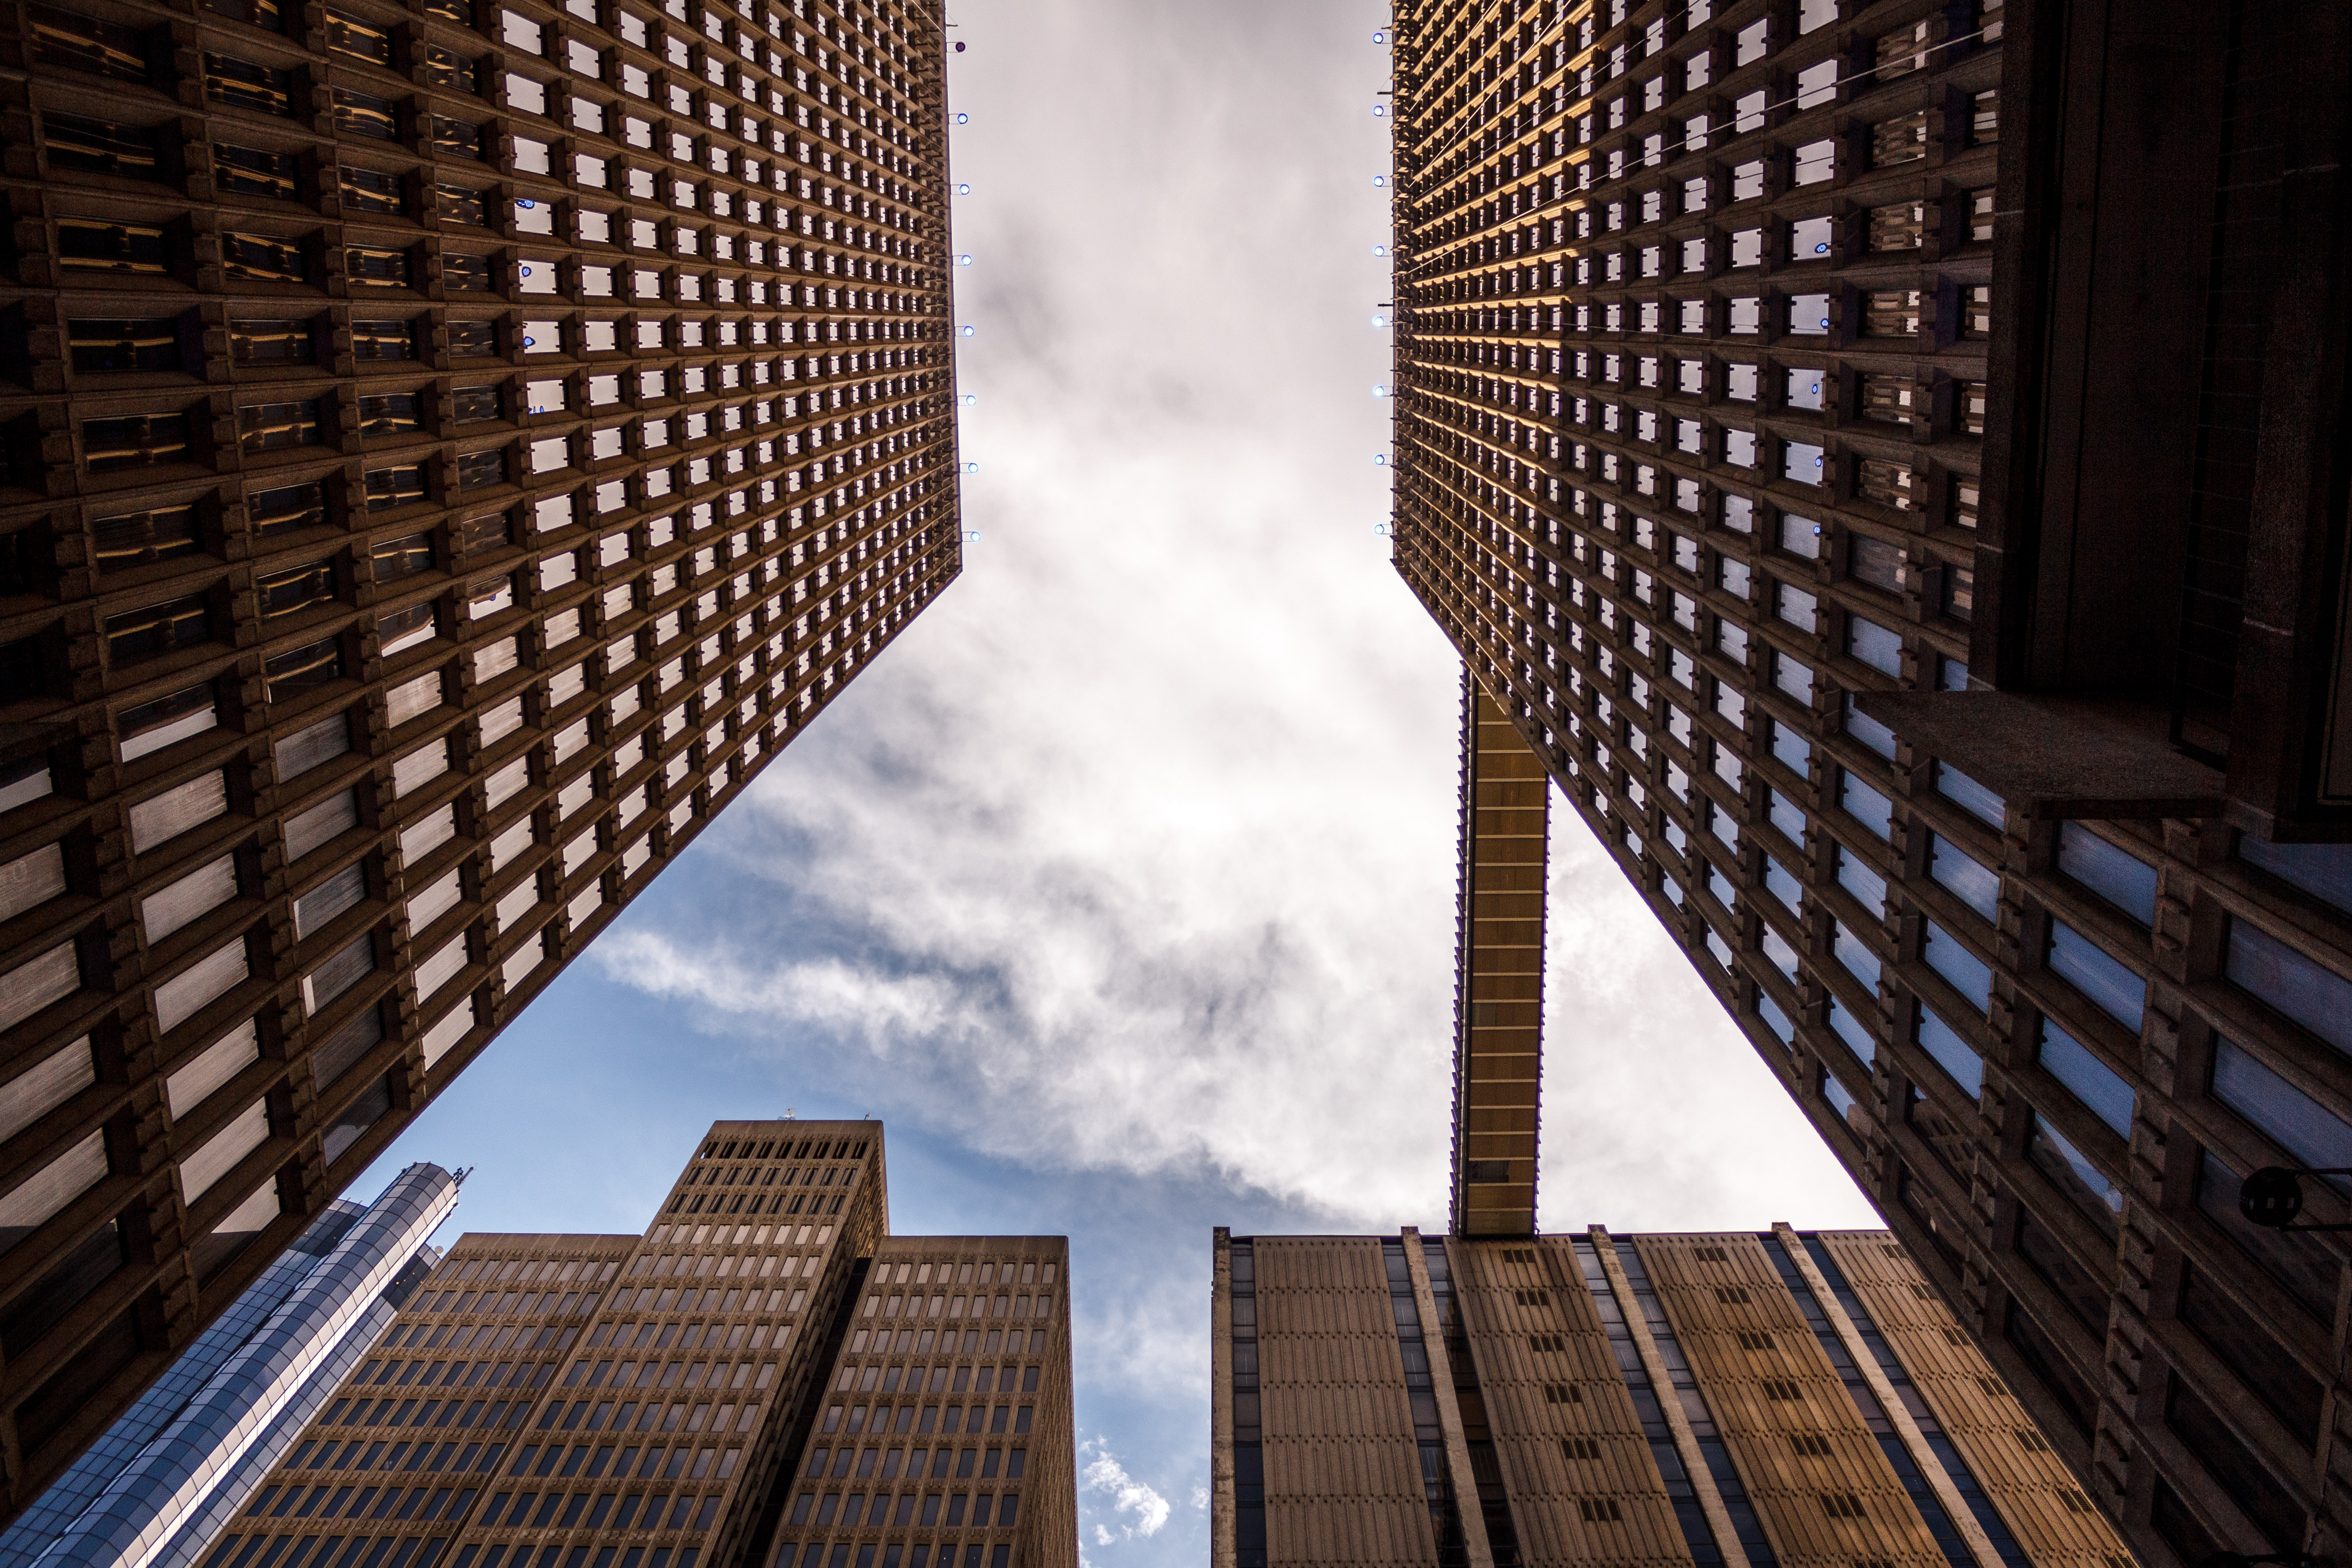 low angle photo of high-rise building